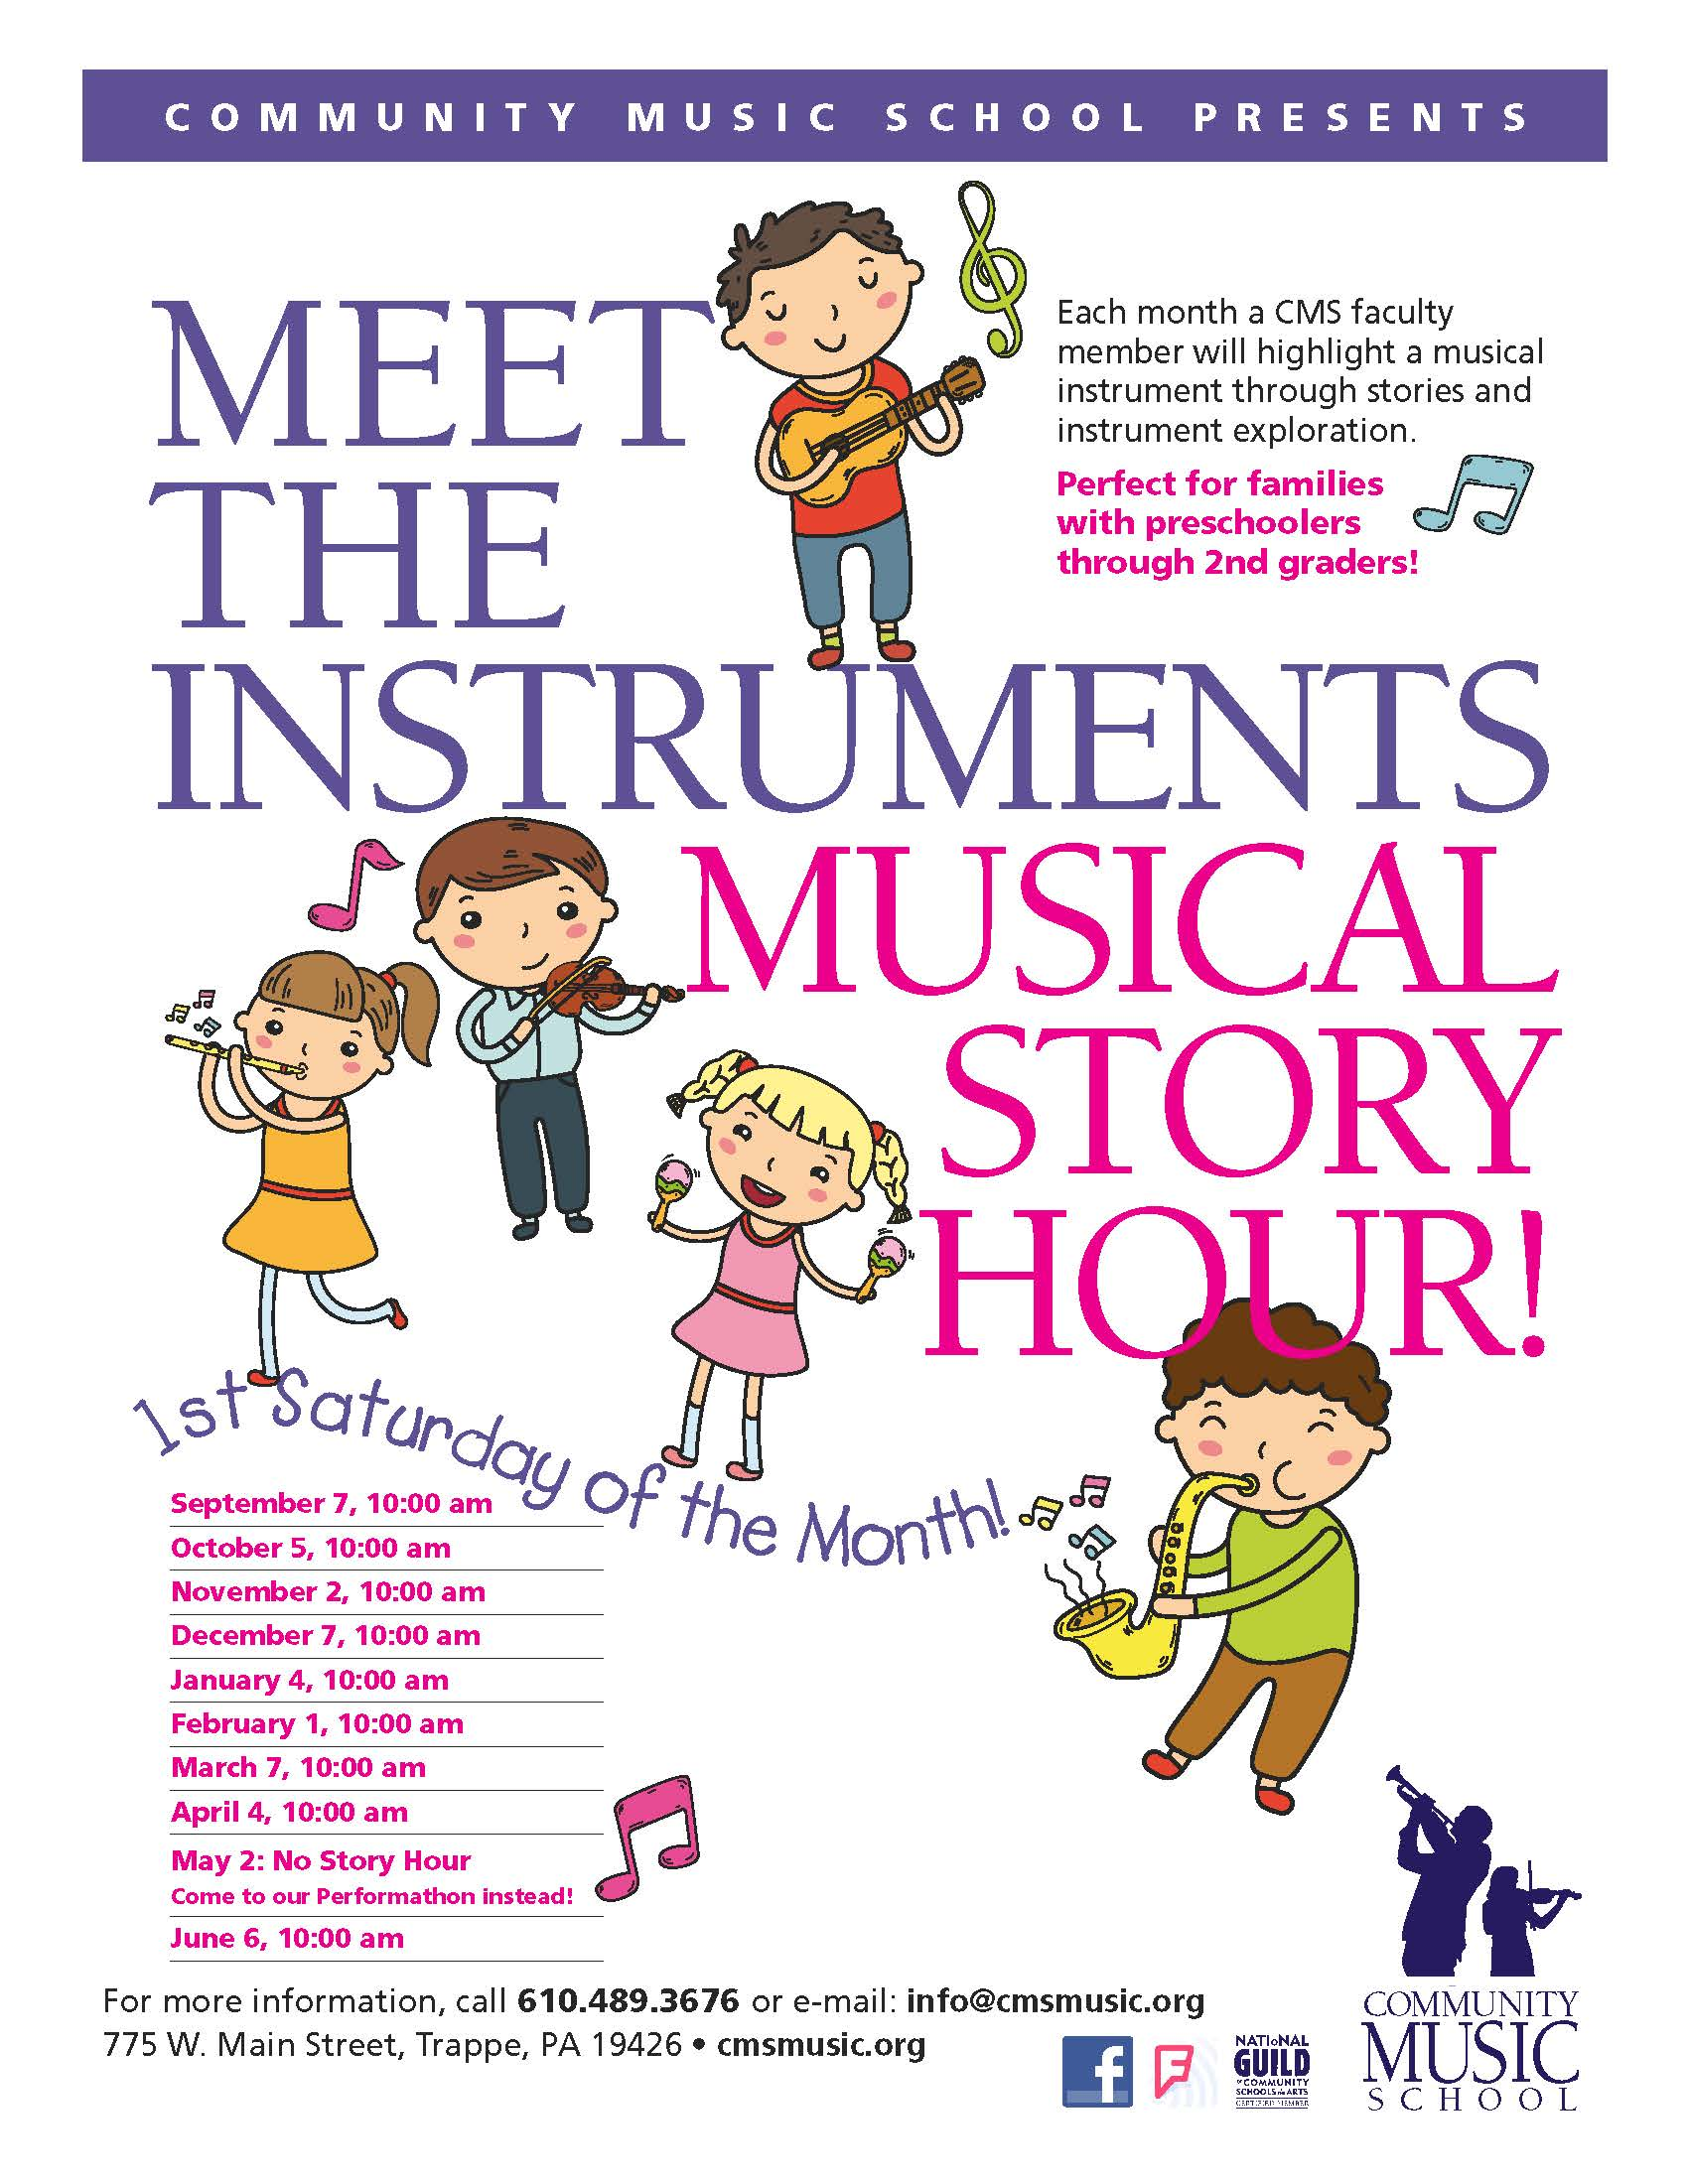 cms music school musical story hour